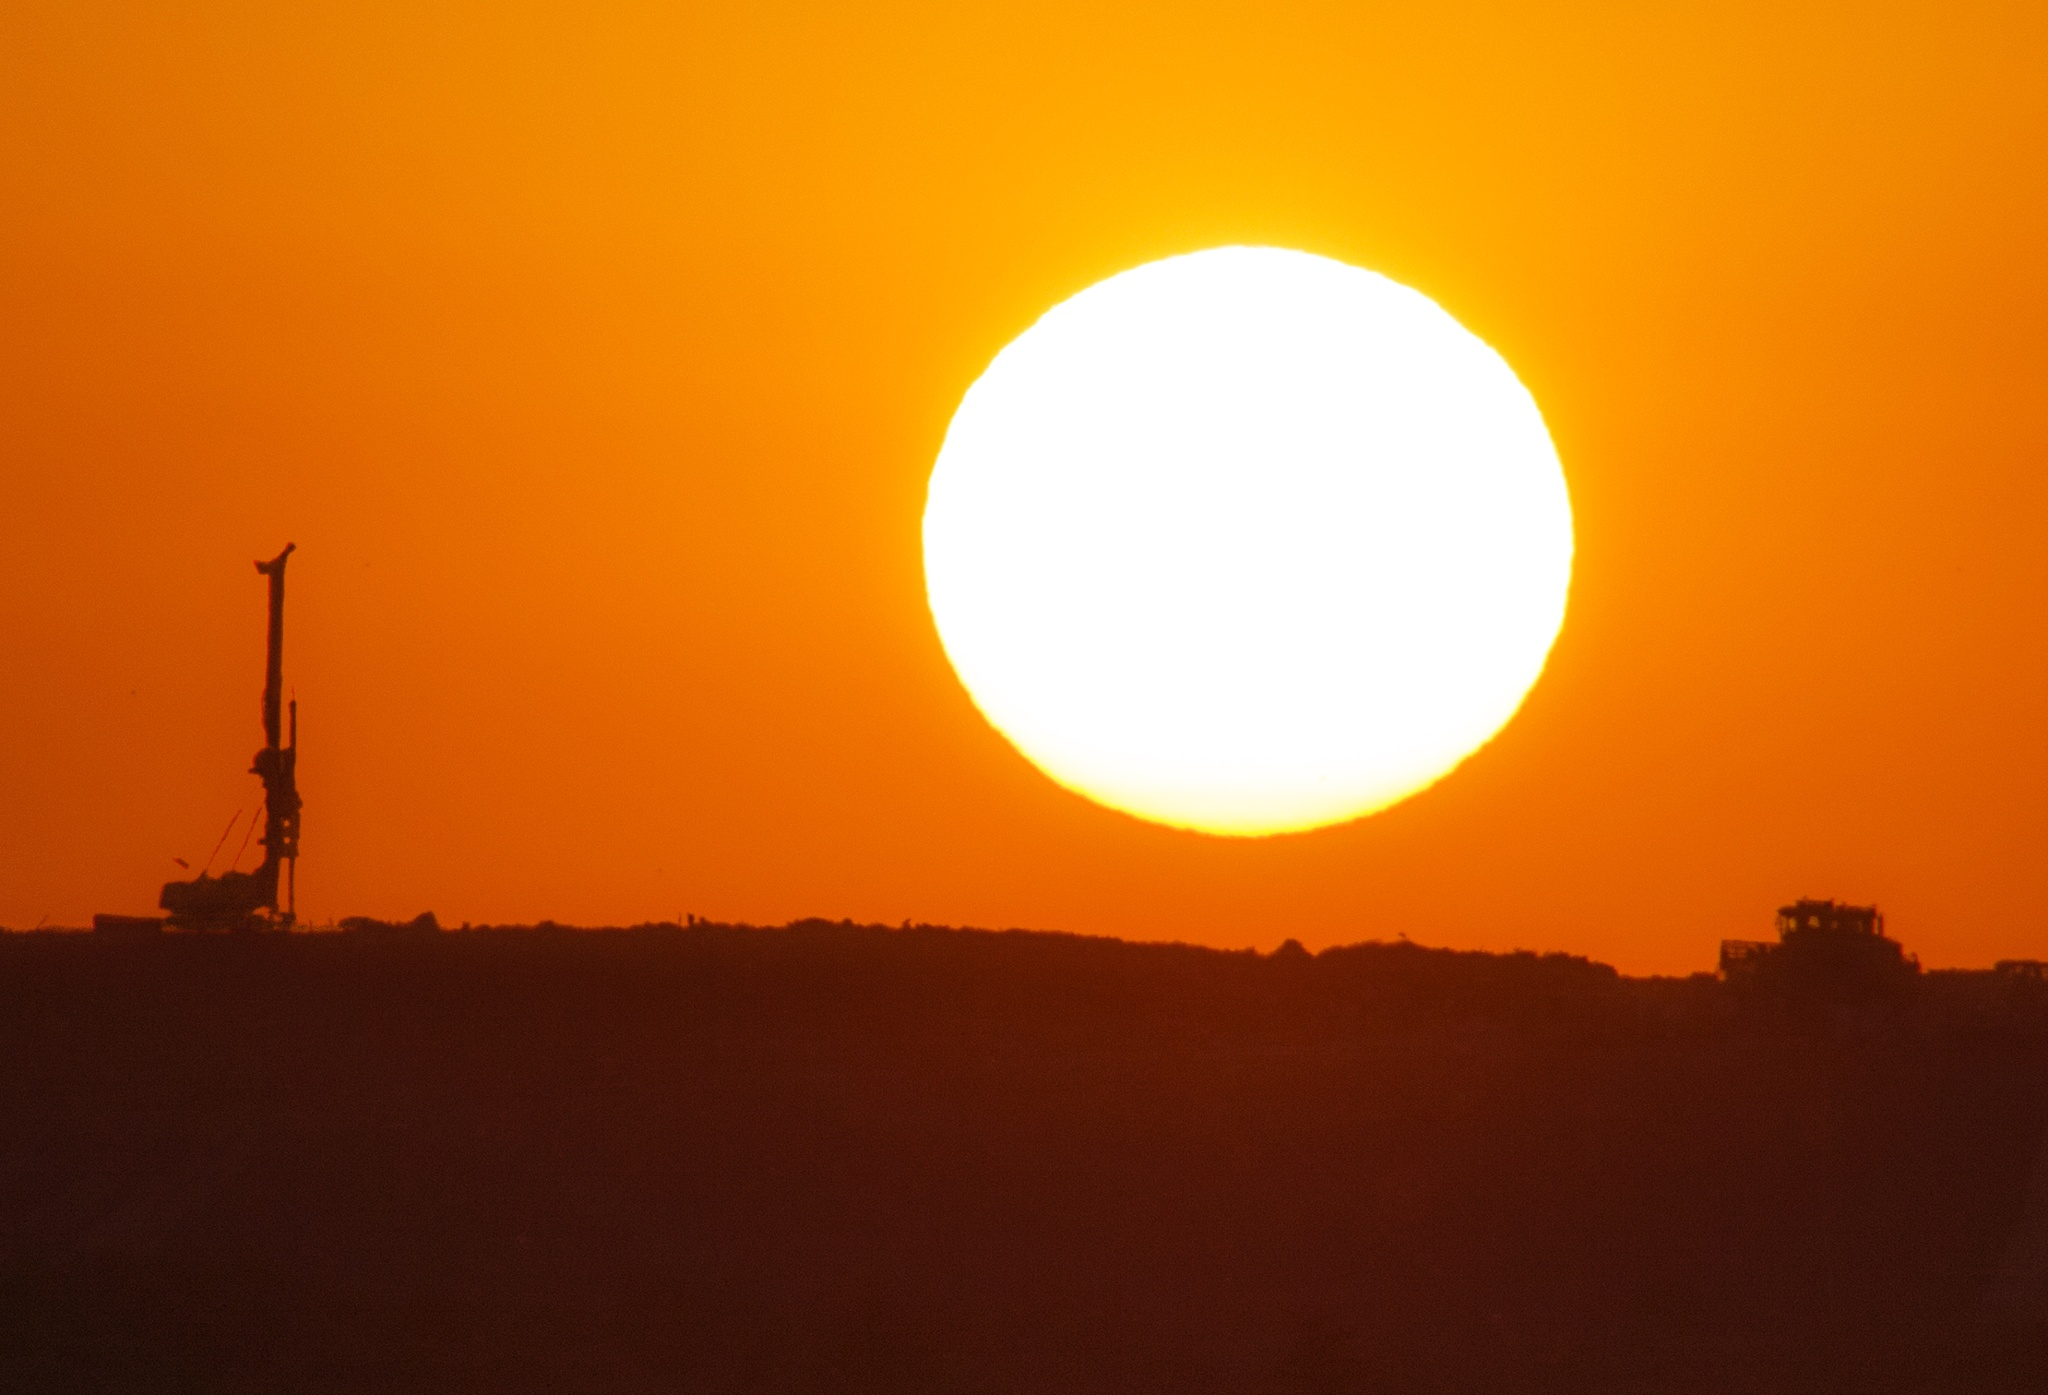 fat old sun by AdrianBotescu